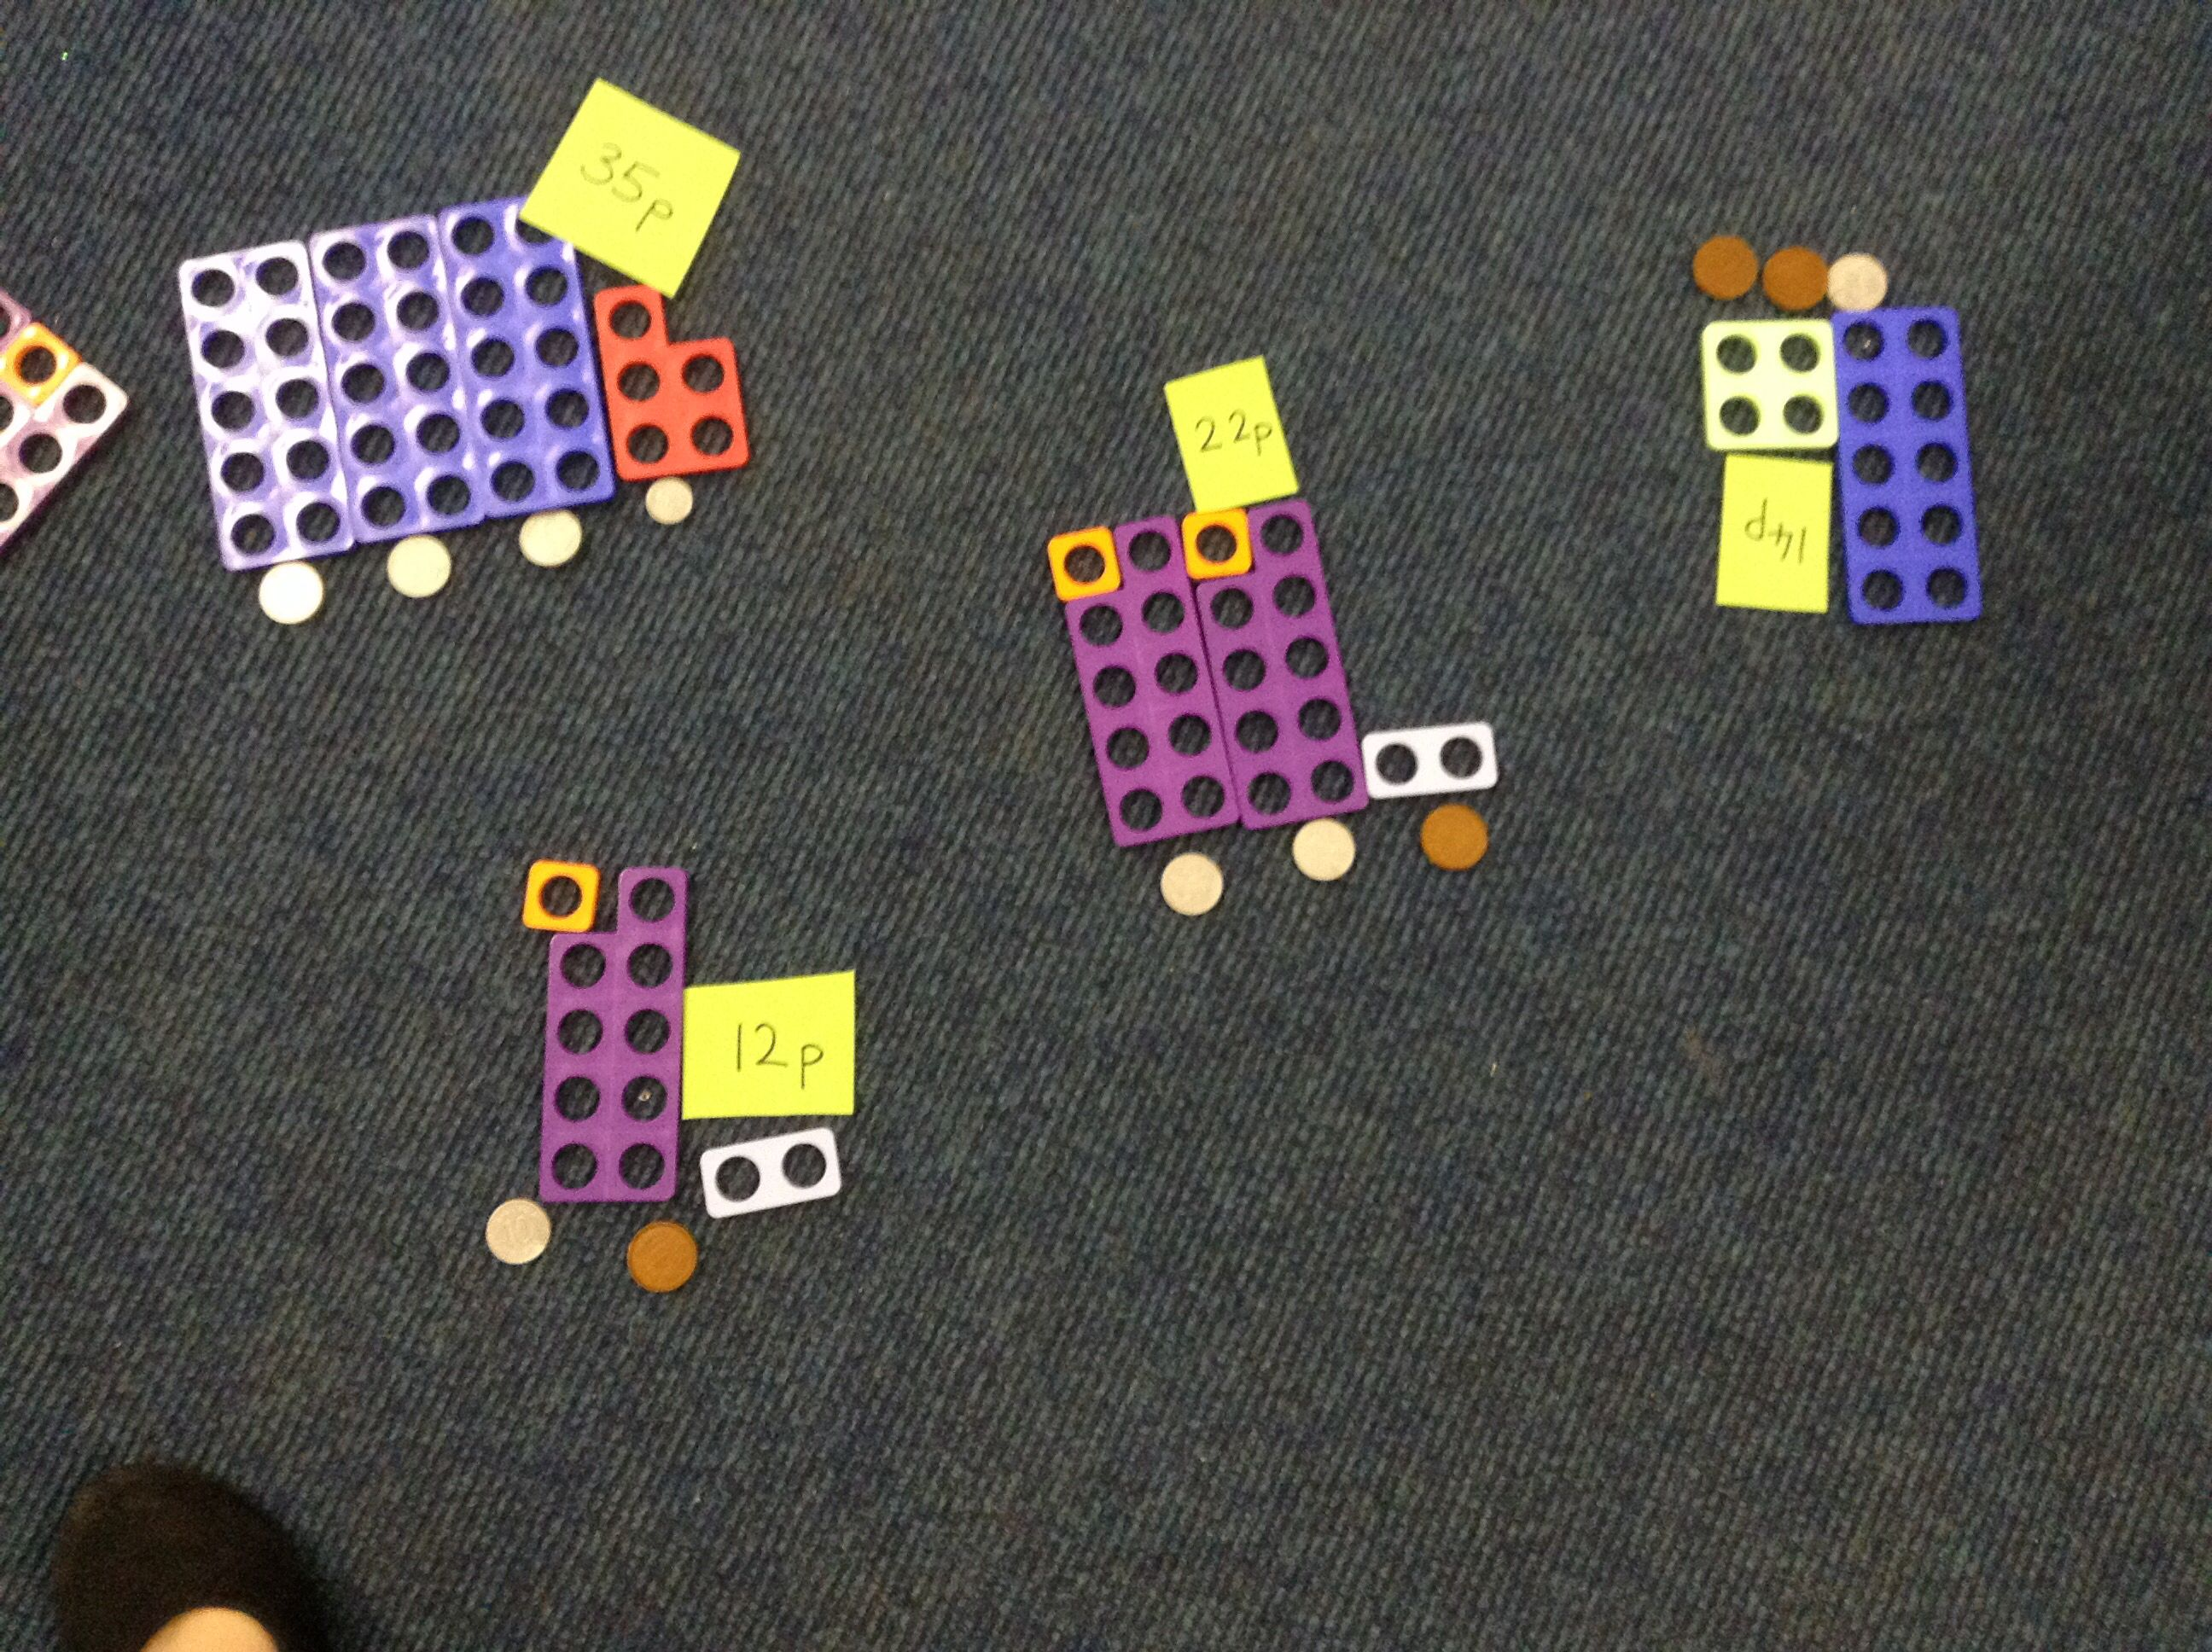 Finding Totals Using Numicon And Coins